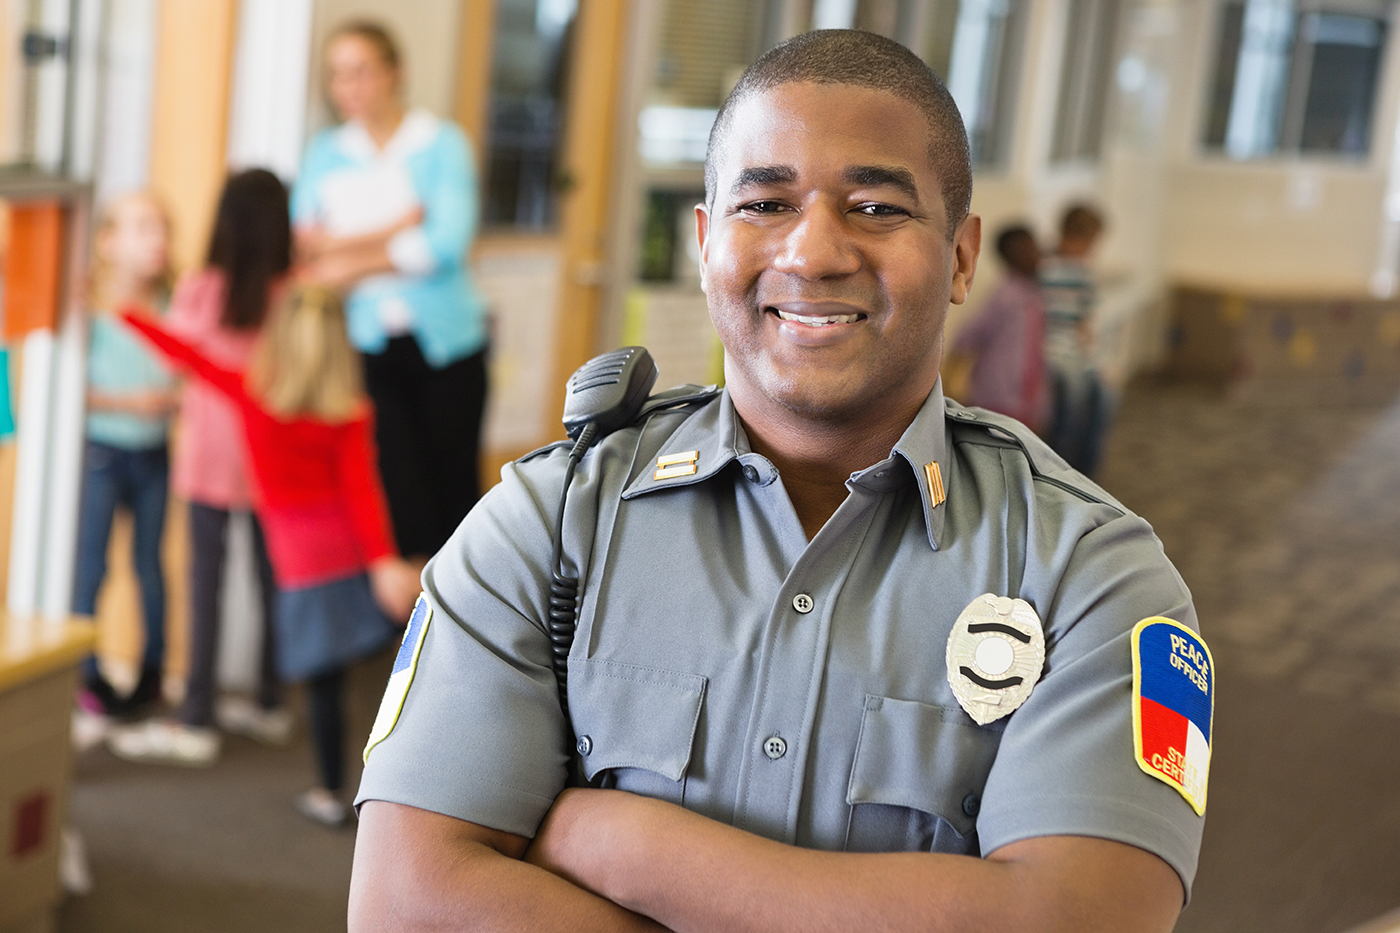 Happy police officer because he is subscribed to the PikMyKid emergency notifications